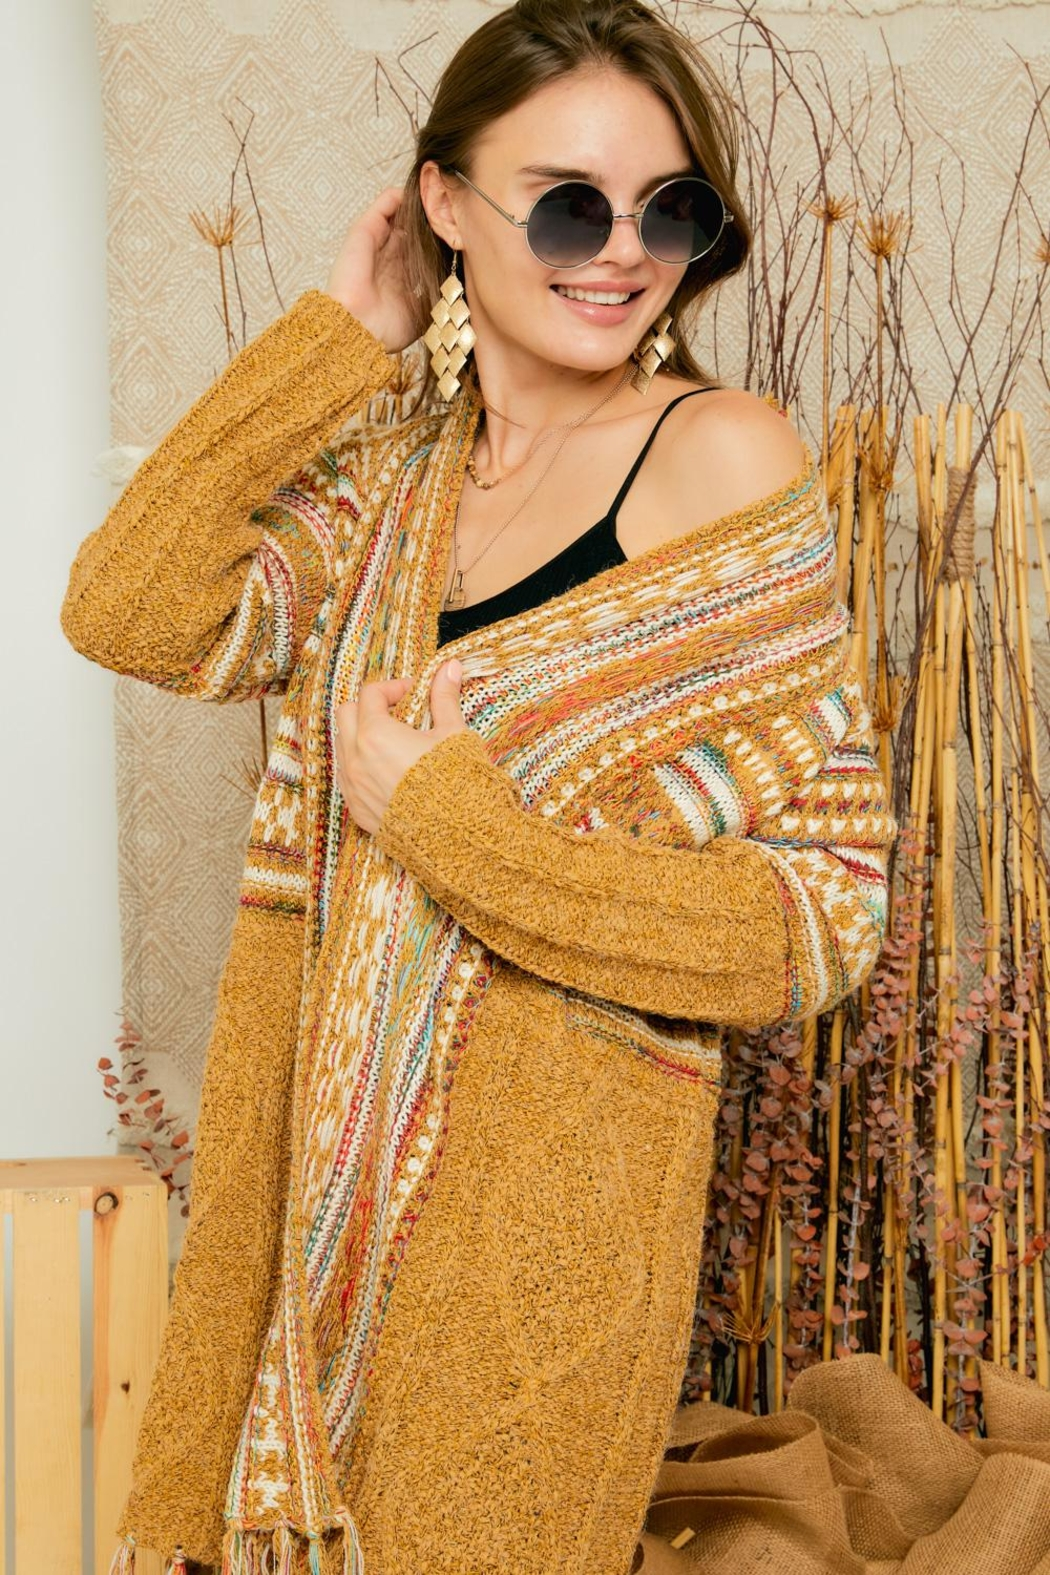 Adora Aztec Tribal Print Boho Knit Sweater Cardigan With Tassel - Side Cropped Image